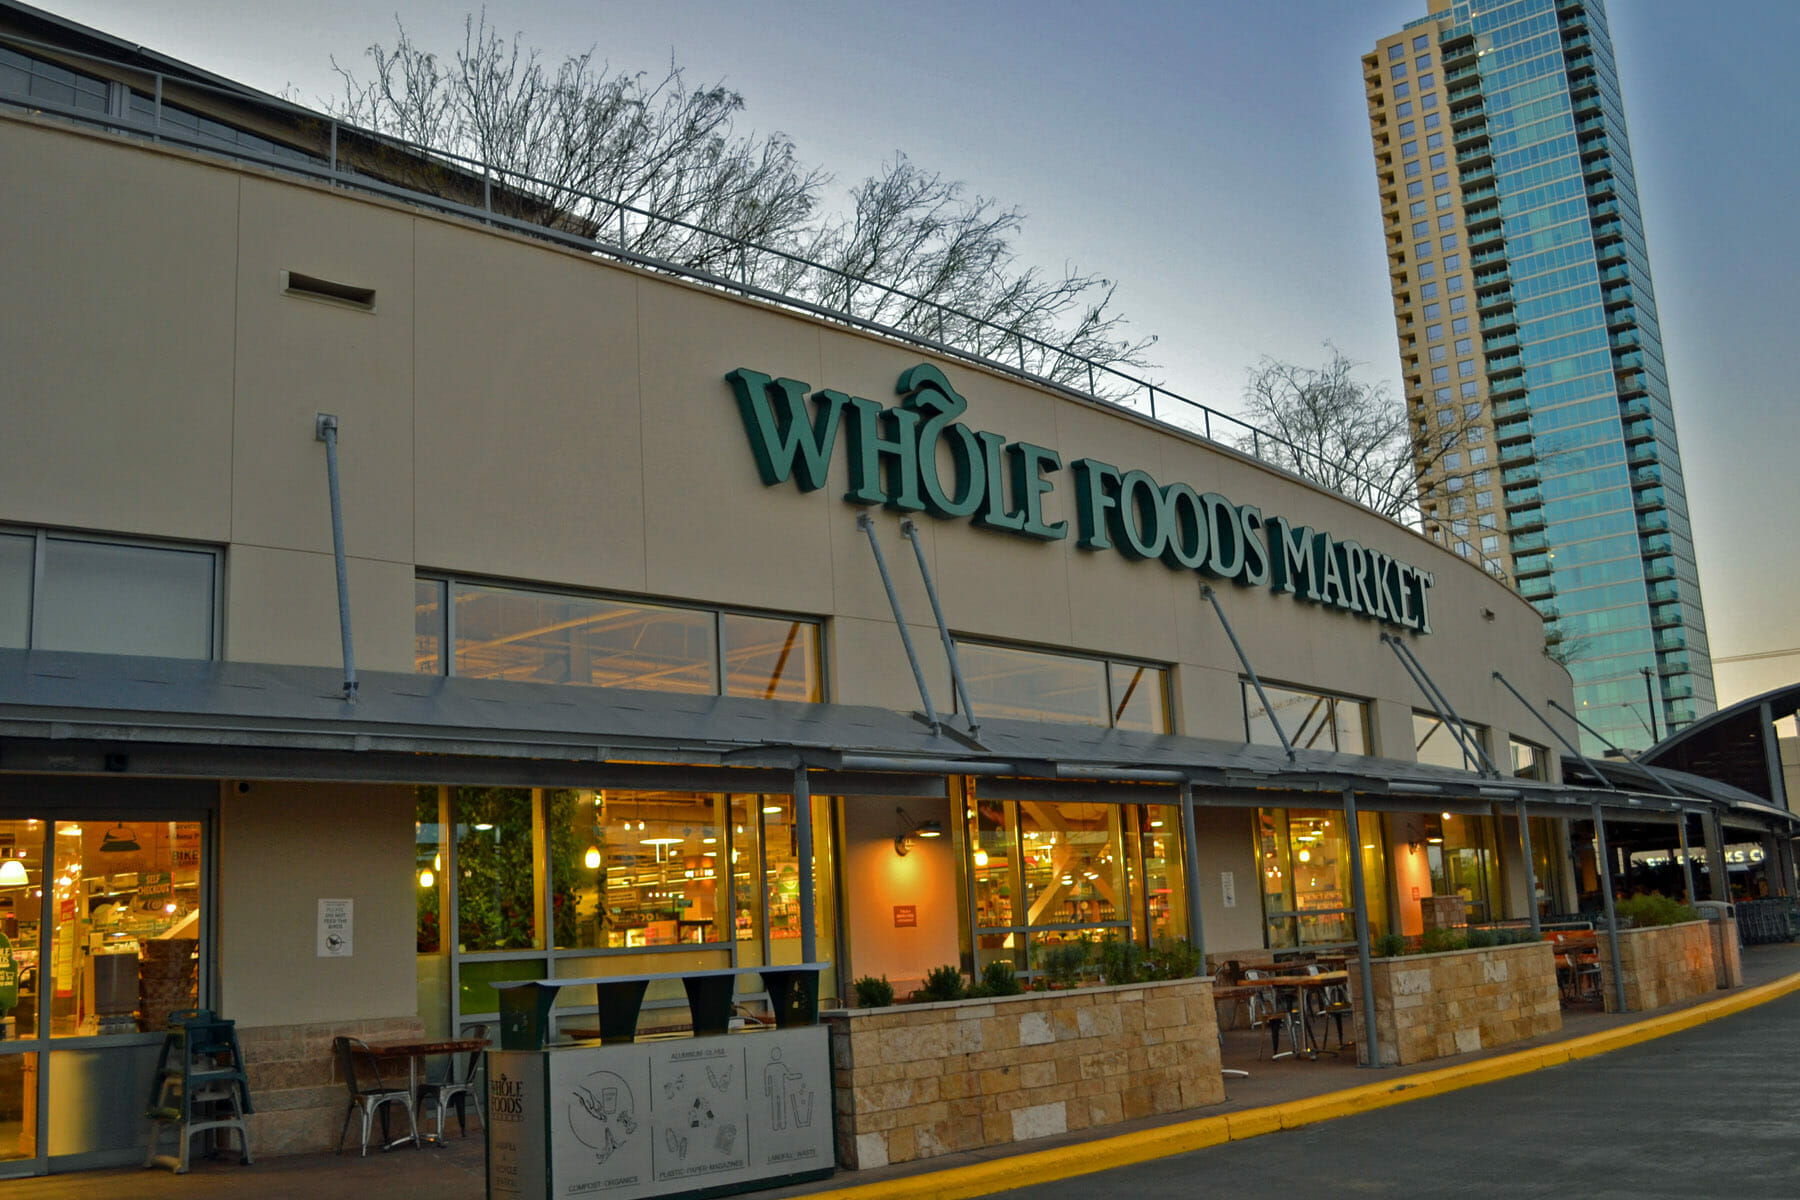 Whole Foods is a foodie's paradise, but their fresh high-quality groceries aren't cheap: here are some tips to shop at Whole Foods on a budget.